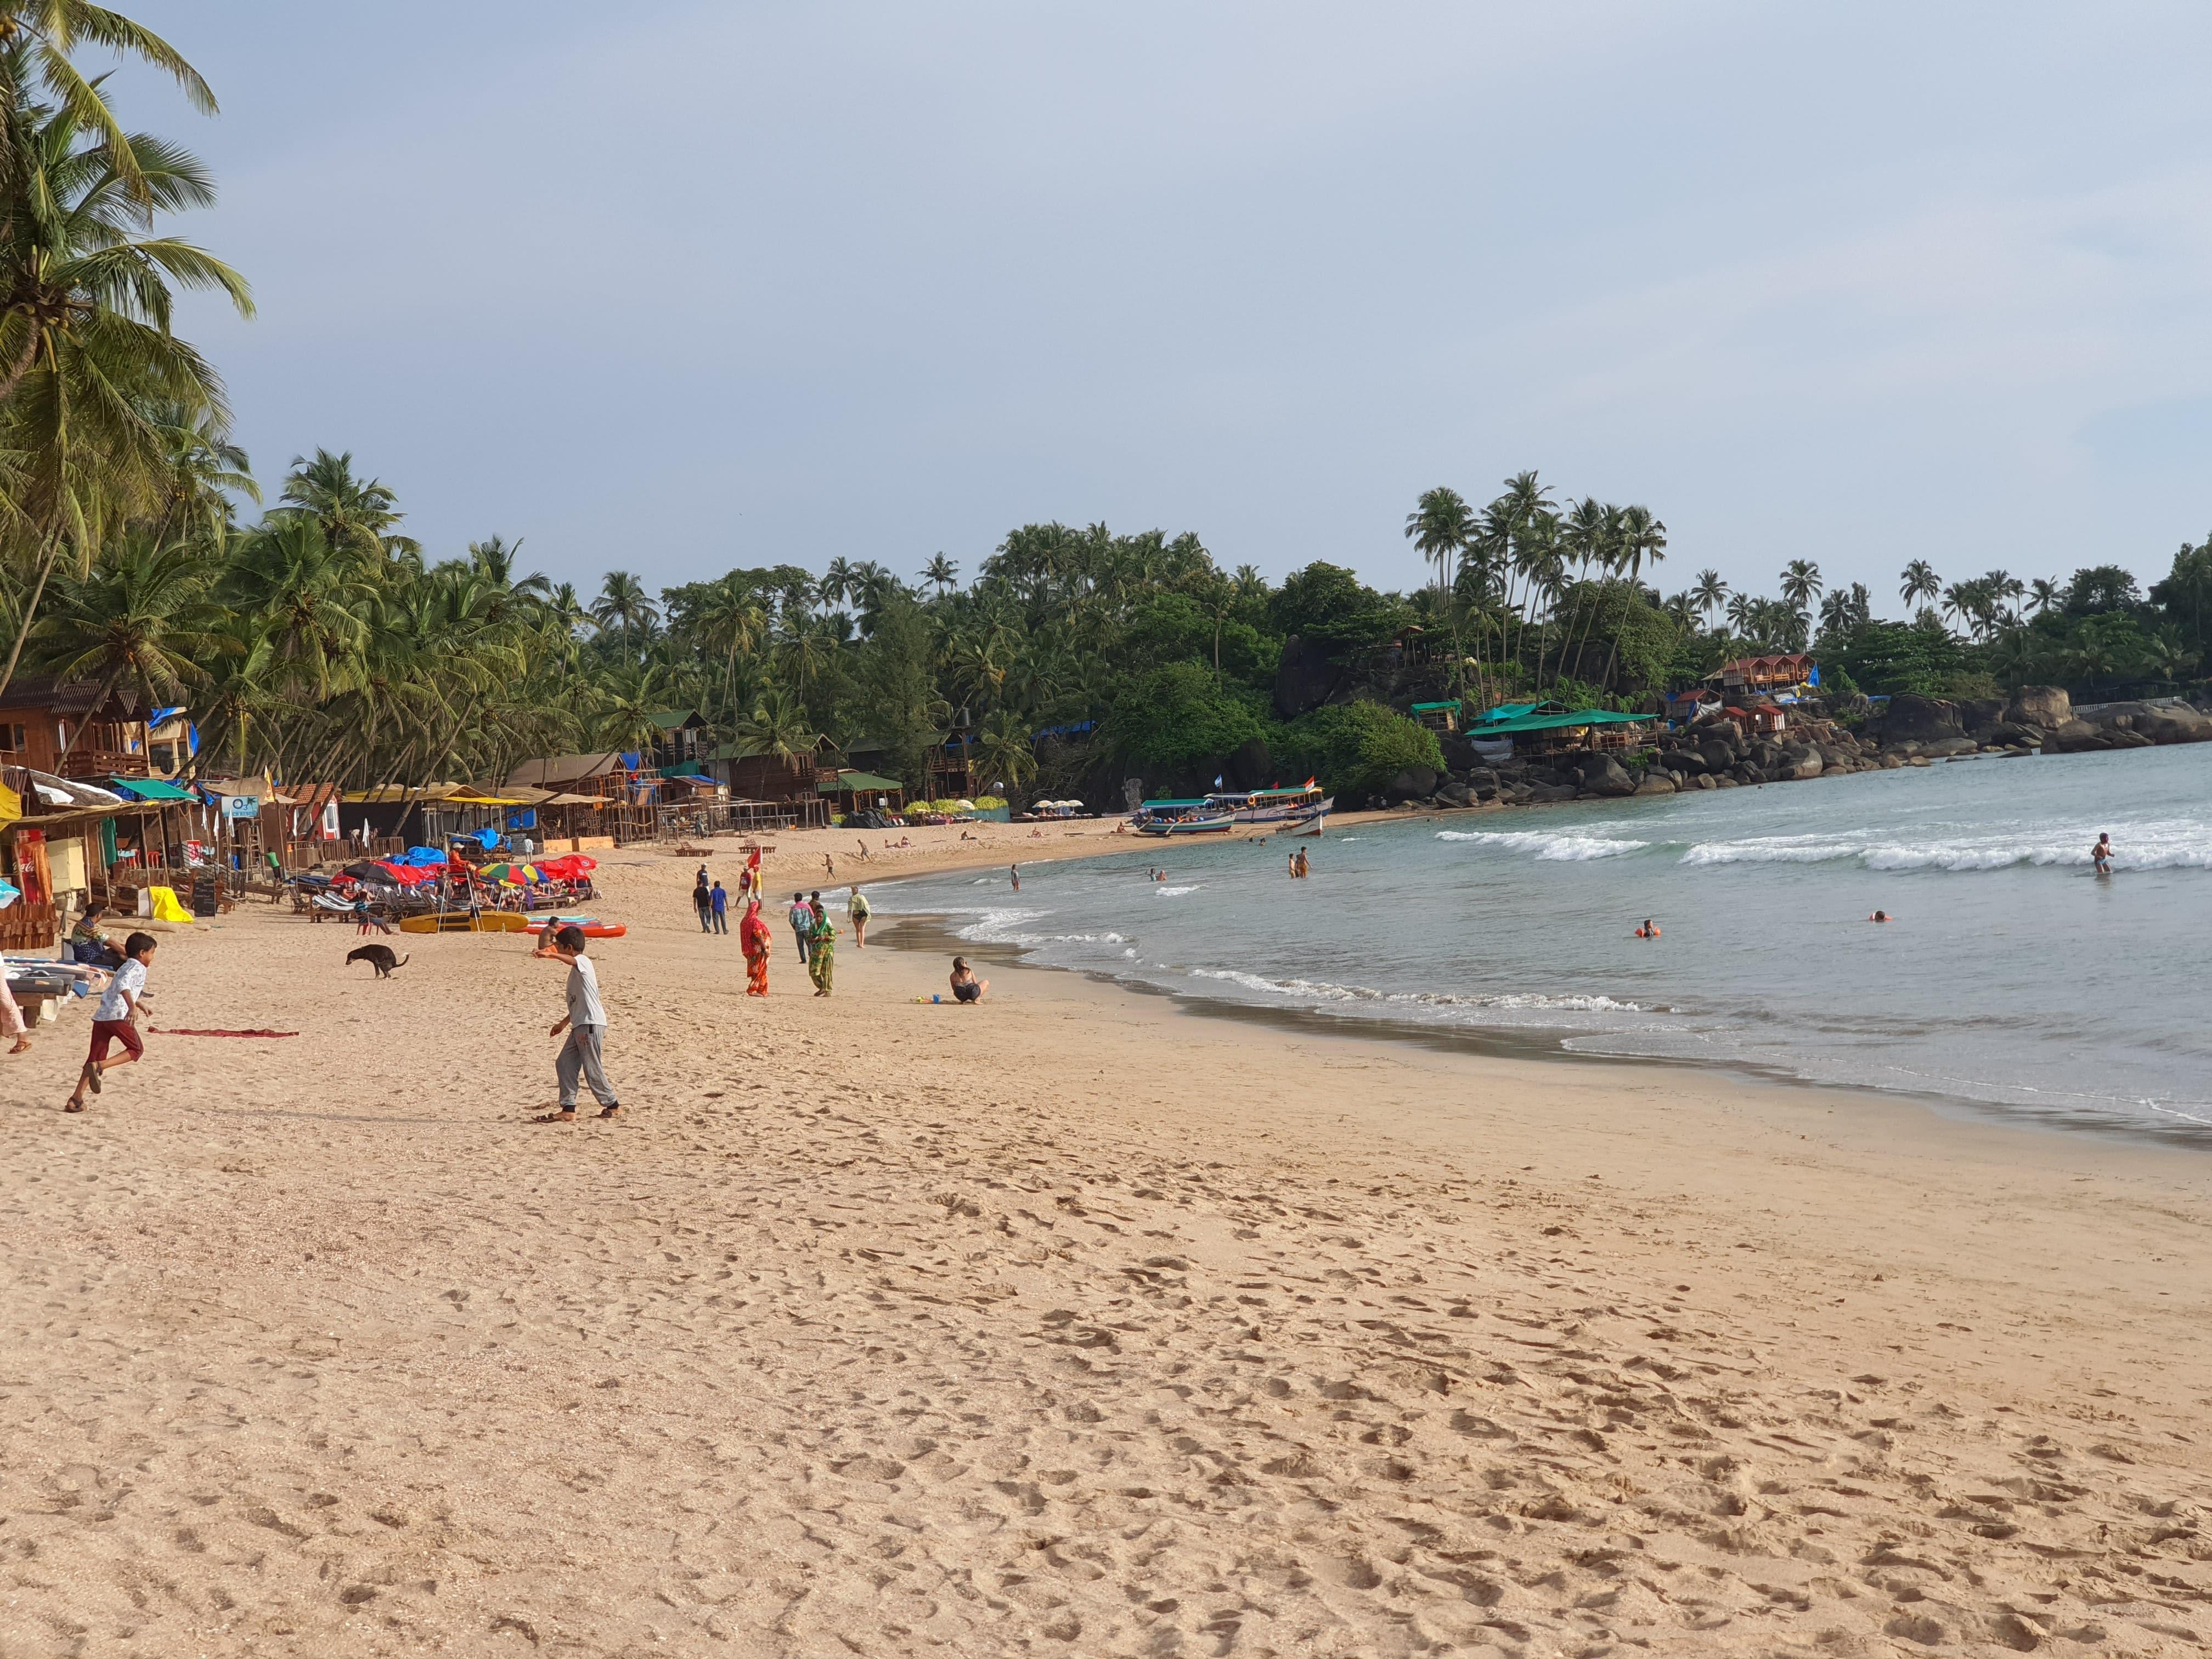 Dazzling-North-Goa-Tour-Package-with-Grand-Island-and-Dudhsagar-JustWravel-1597392104-5.jpg